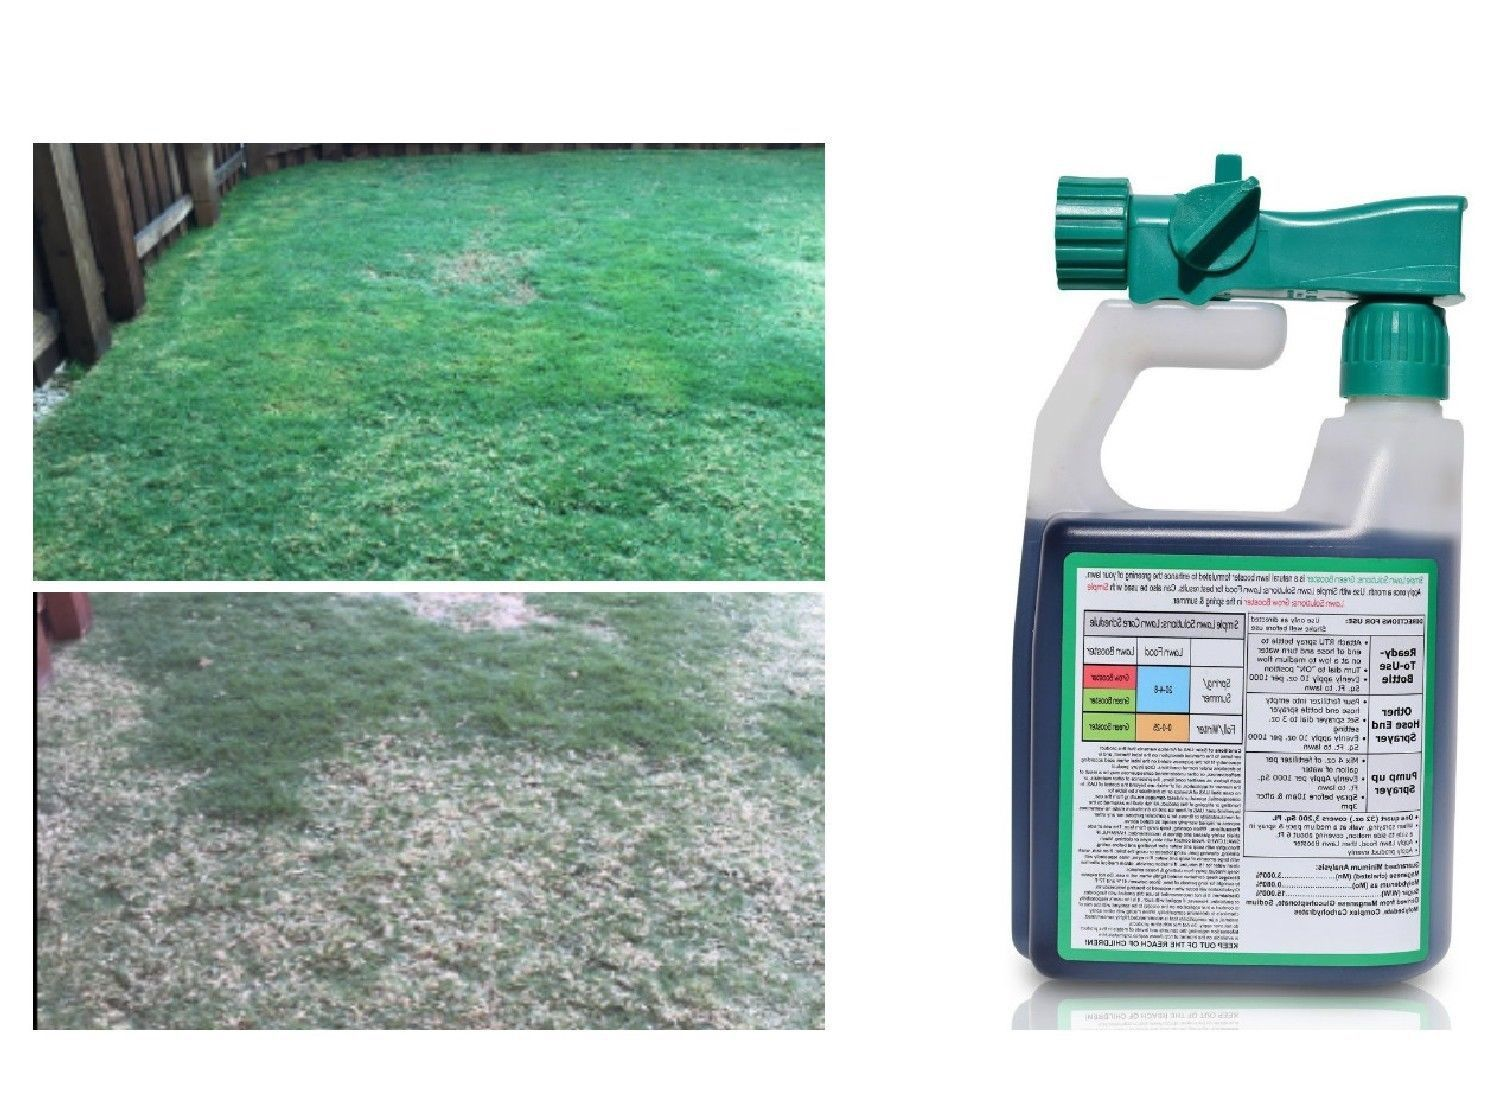 Grass Seed Lawn Care Intense Booster Natural Seed Spray Growing Seeding Simply Grass Seed Lawn Care Grass